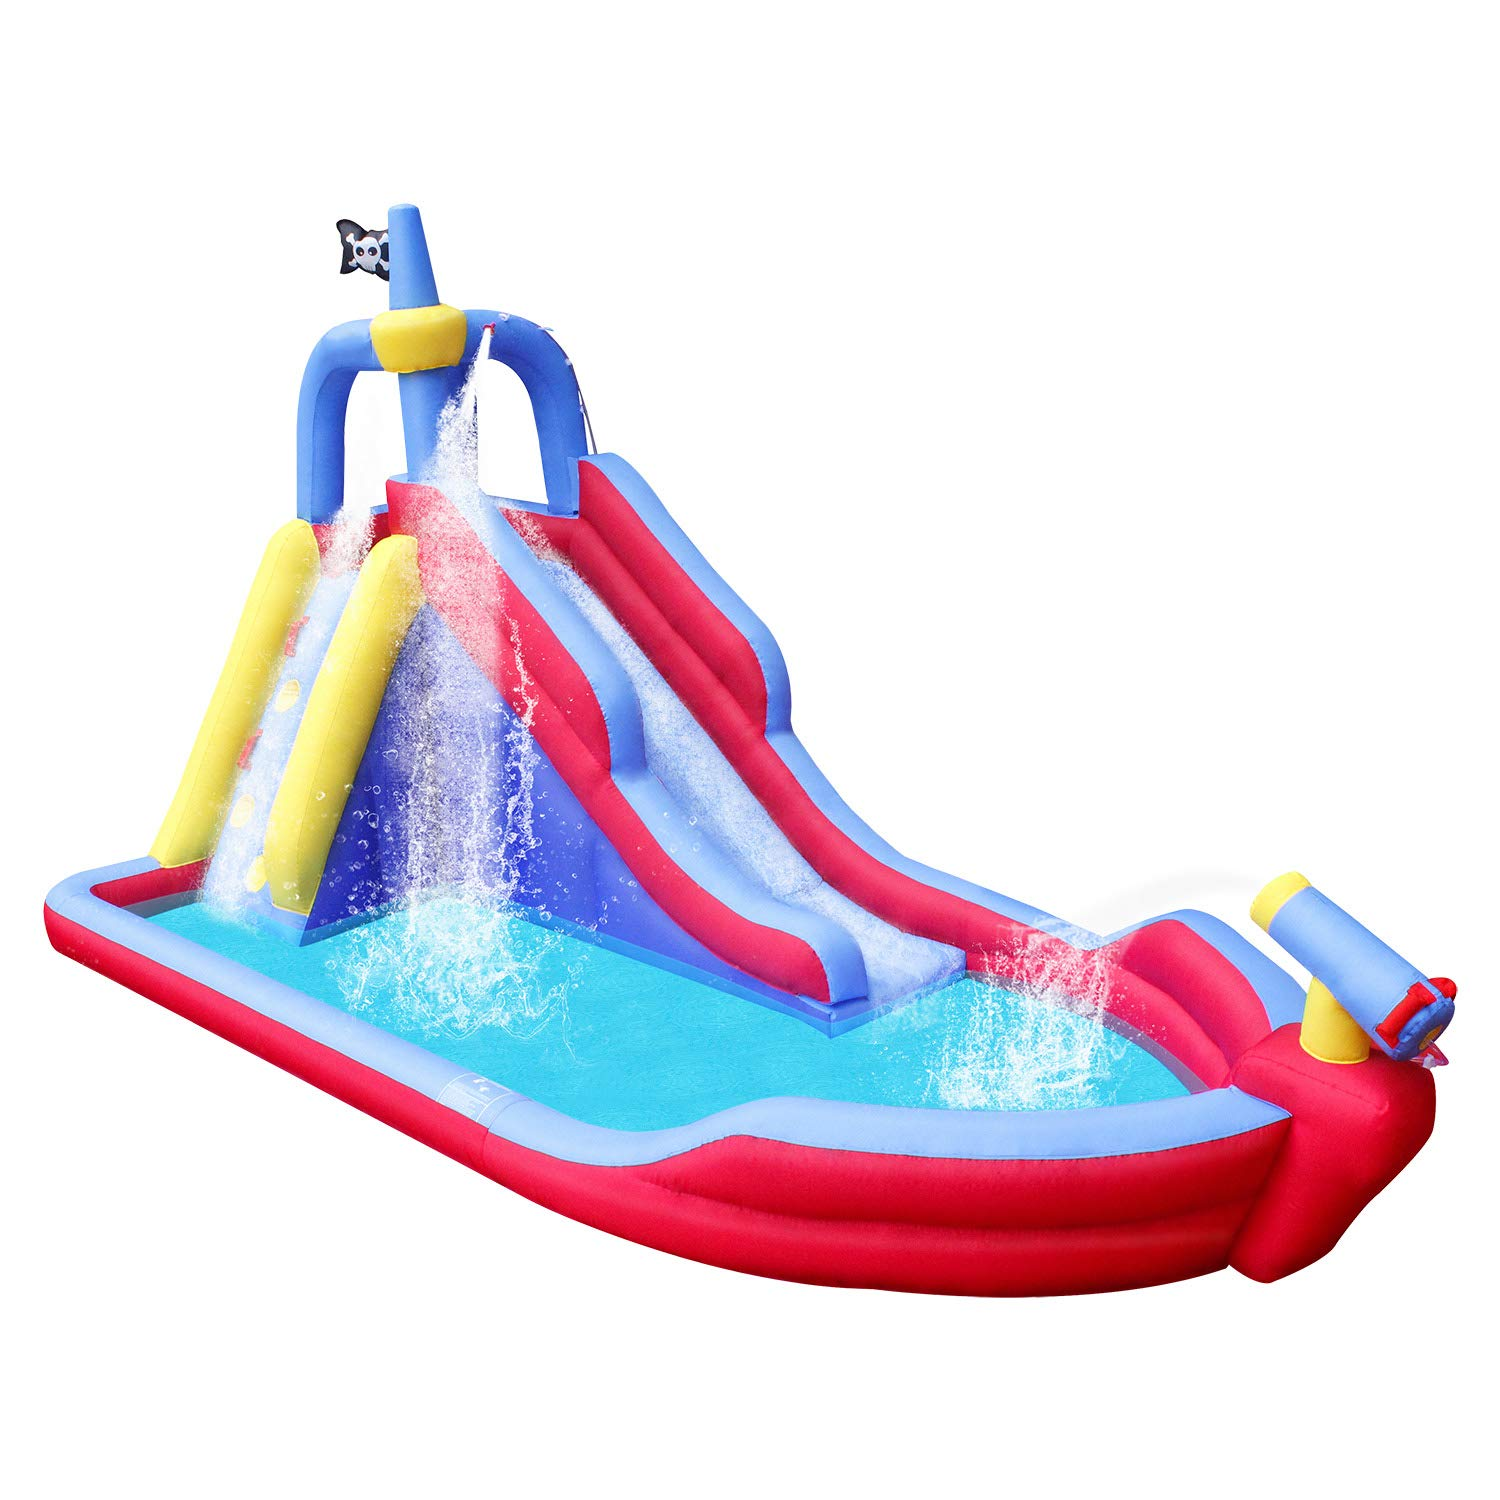 RETRO JUMP Inflatable Pirate Boat Bouncy Water Slide with Blower Climbing Wall Water Park for Kids